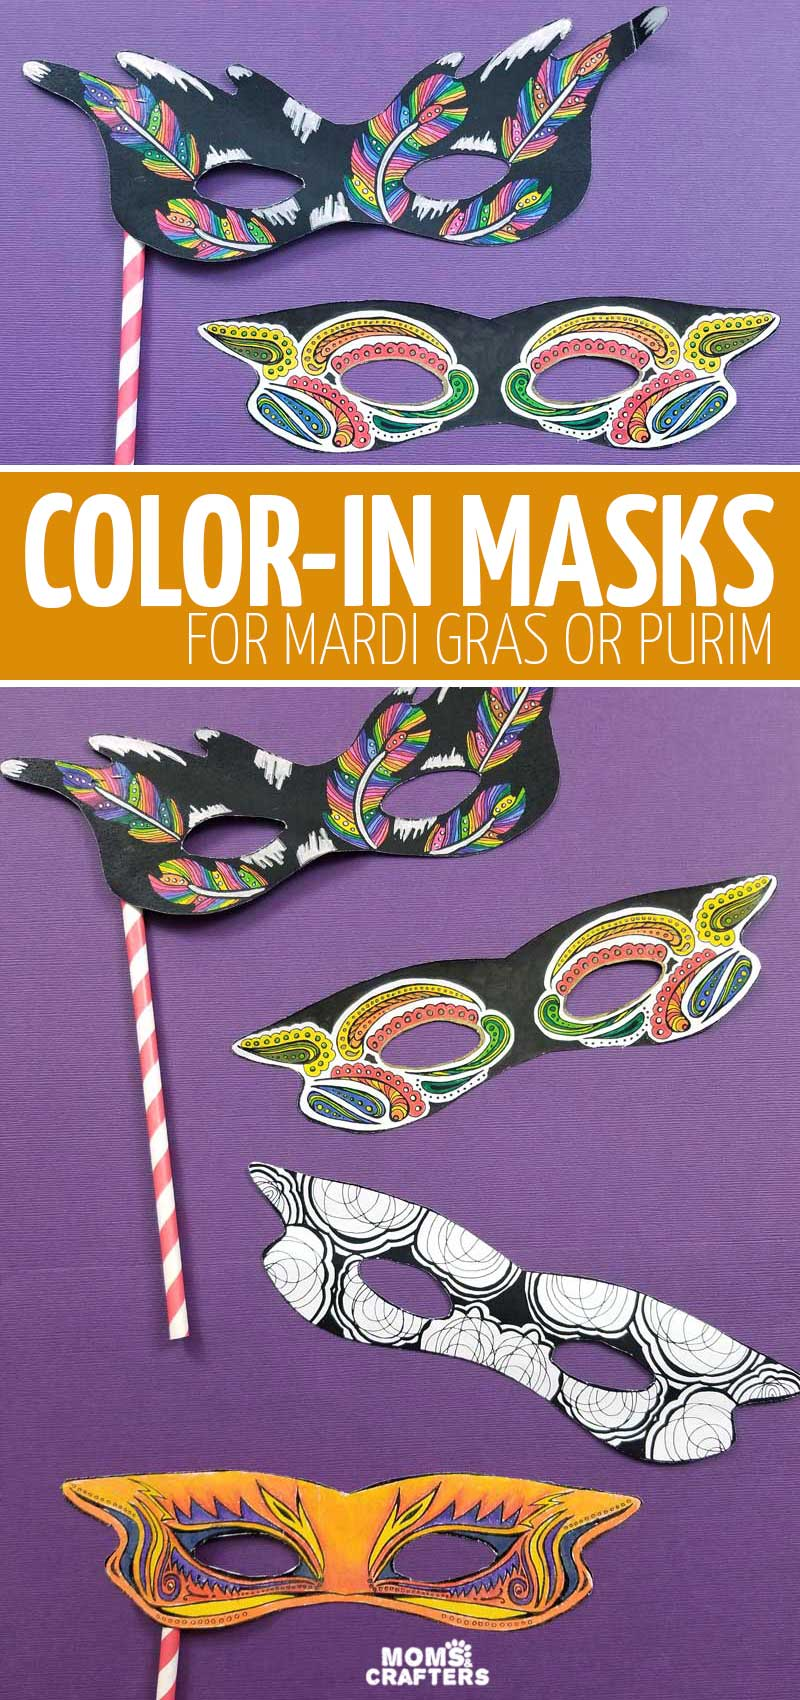 Grab this bundle of mardi gras masks and color-in masks for kids and adults! These cool printable coloring pages include a free sample for you to try it for mardi gras, purim, or halloween.